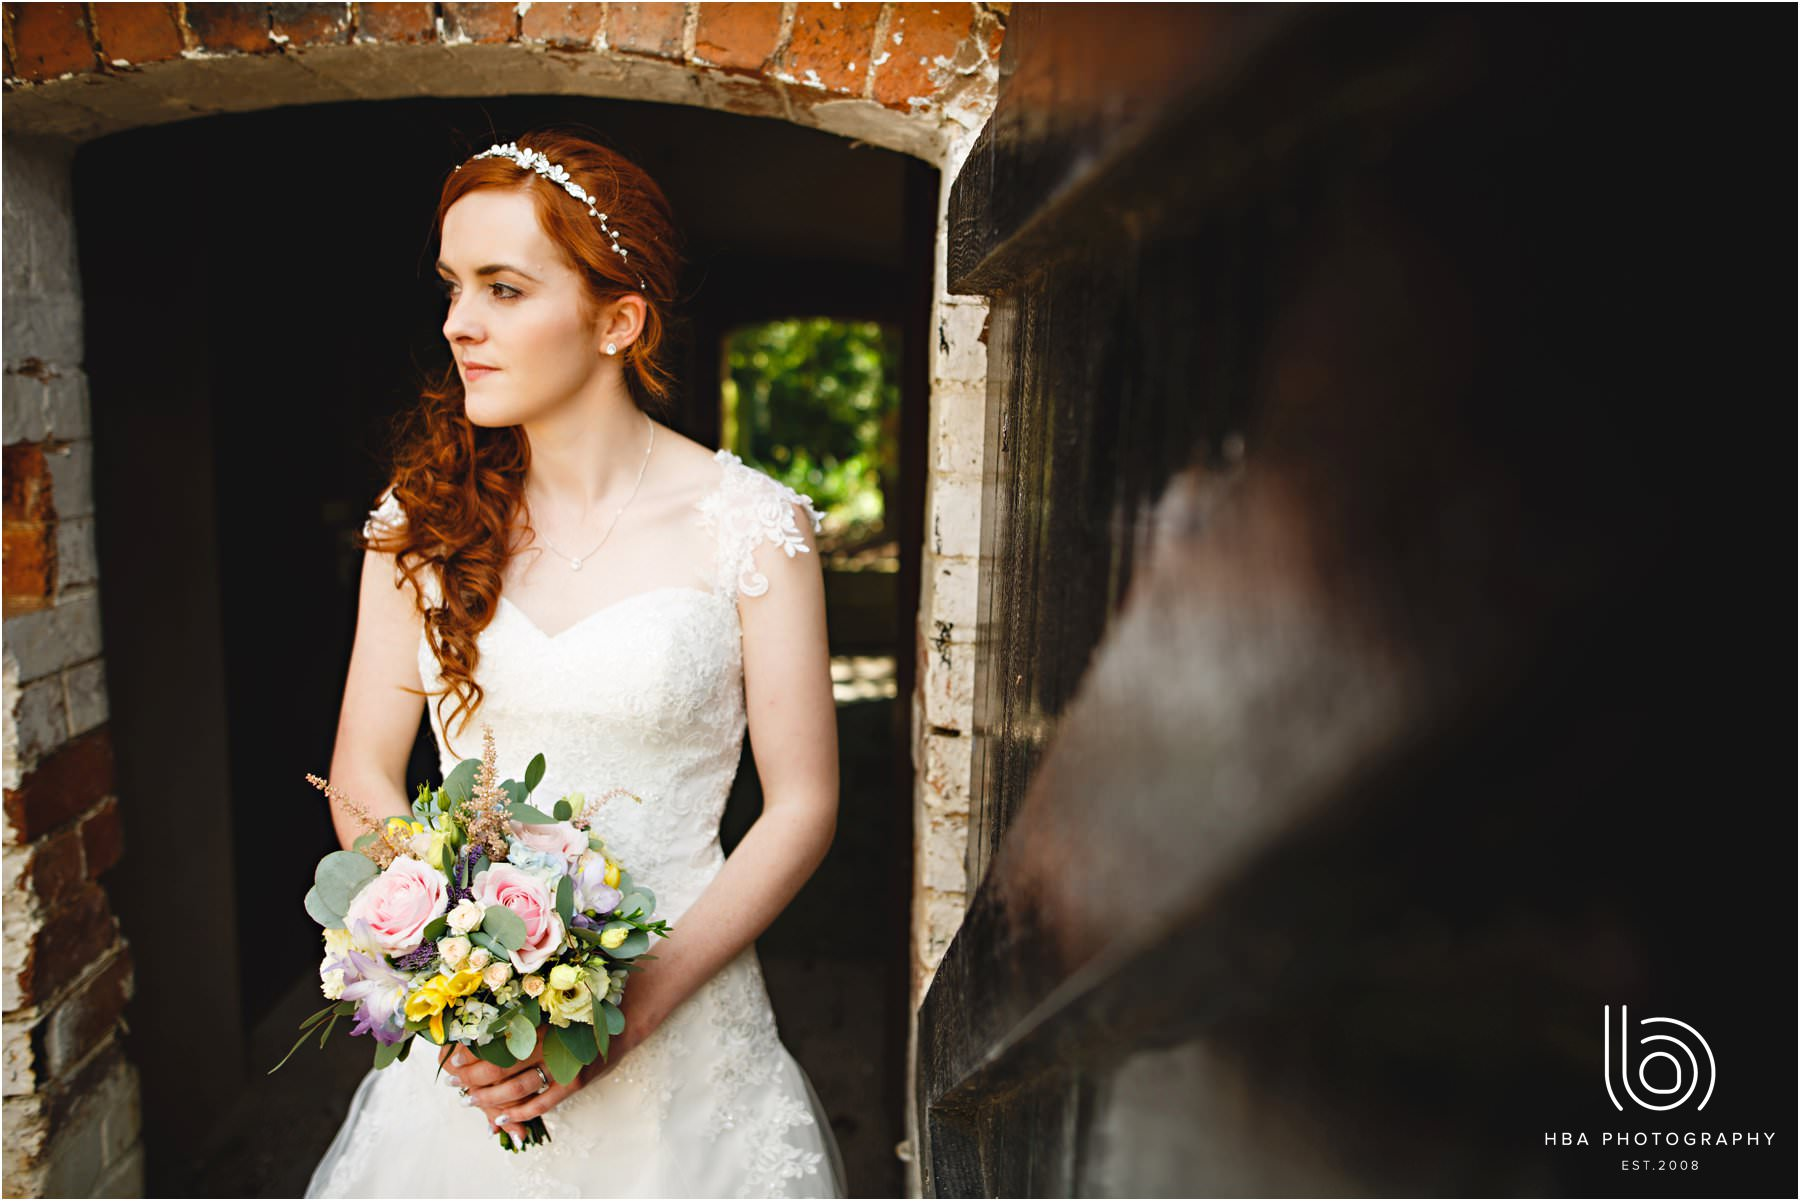 the bride at the house at Mythe Barn